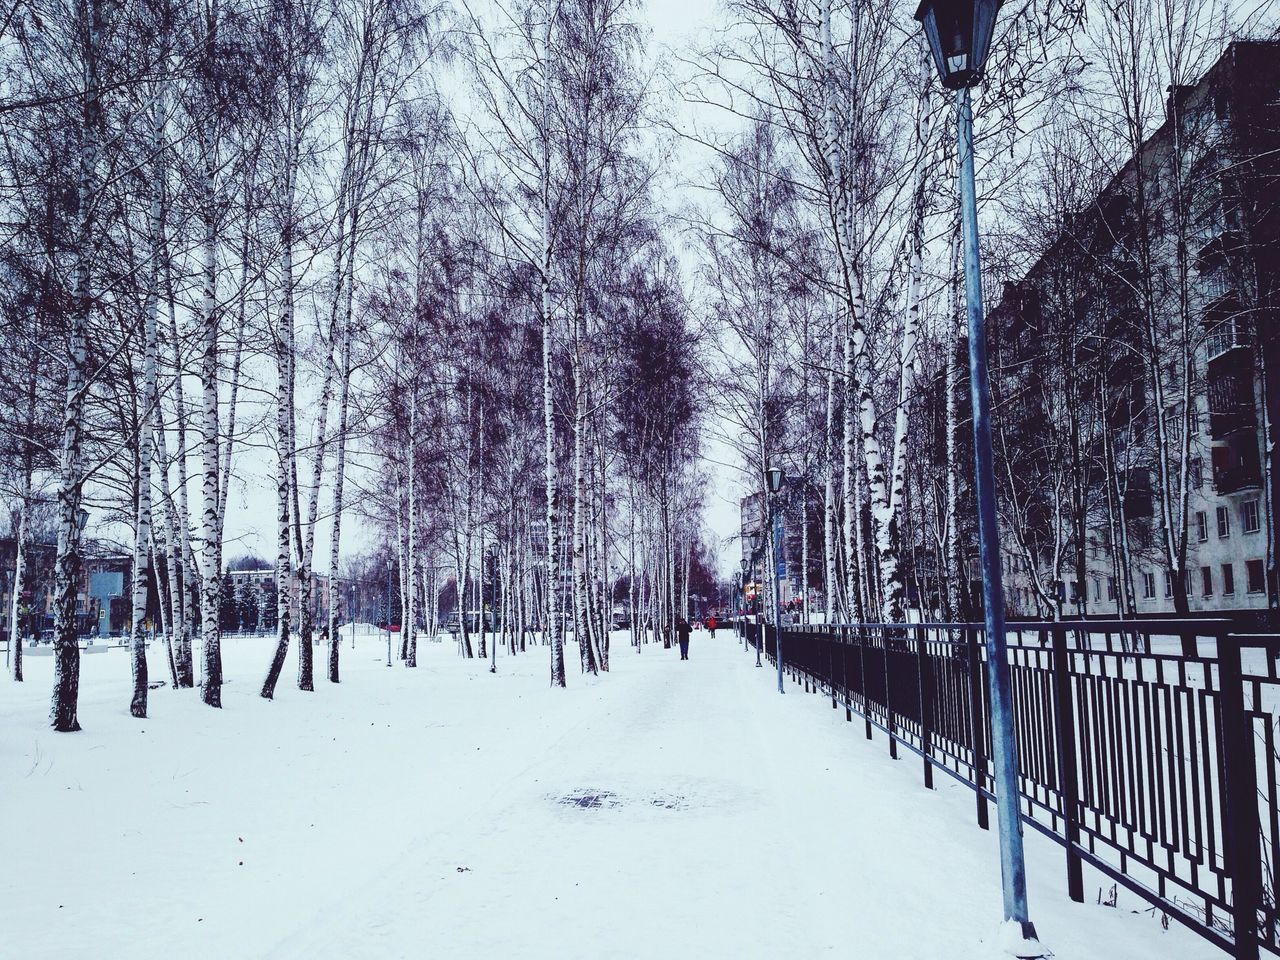 winter, snow, cold temperature, weather, tree, nature, bare tree, outdoors, tranquility, day, beauty in nature, frozen, no people, scenics, sky